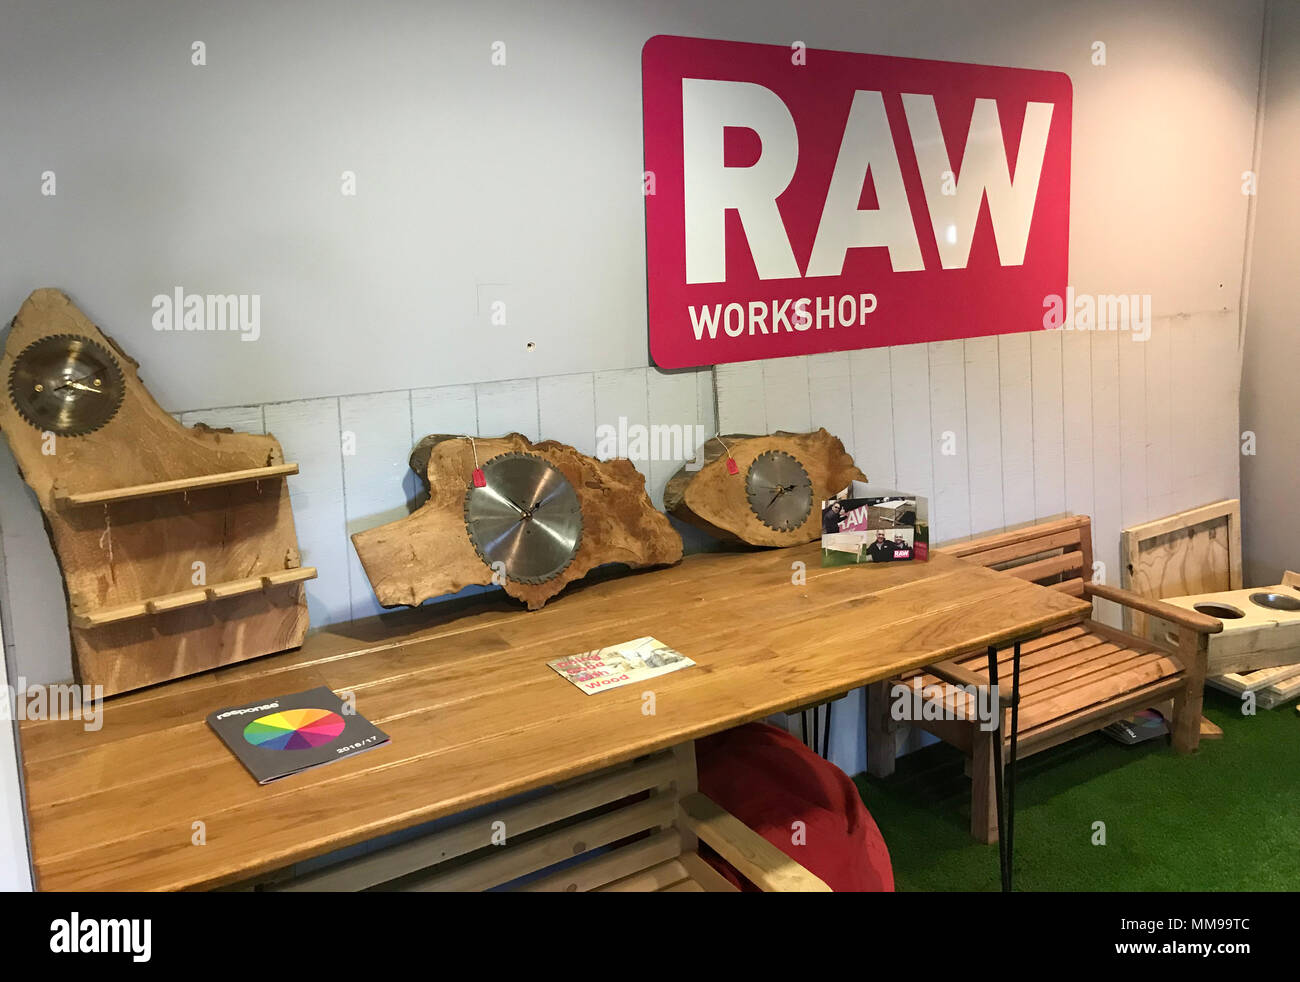 GoTonysmith,@HotpixUK,Blackbird Leys,reclaimed woodworkers,reclaimed,tables,craft,woodcraft,joinery,Dunnock Way,Oxford,OX4 7EX,OX4,DIY,grant,skills,wood skills,wood recycling,wood collection,woodwork,reclaimed timber,doing good with wood,employ,train,support,people with physical difficulties,people,help,assist,mental health illness,recovery from addiction,criminal histories,Response Oxford,Response,Furniture,Products,making furniture,making products,Joinery Workshop